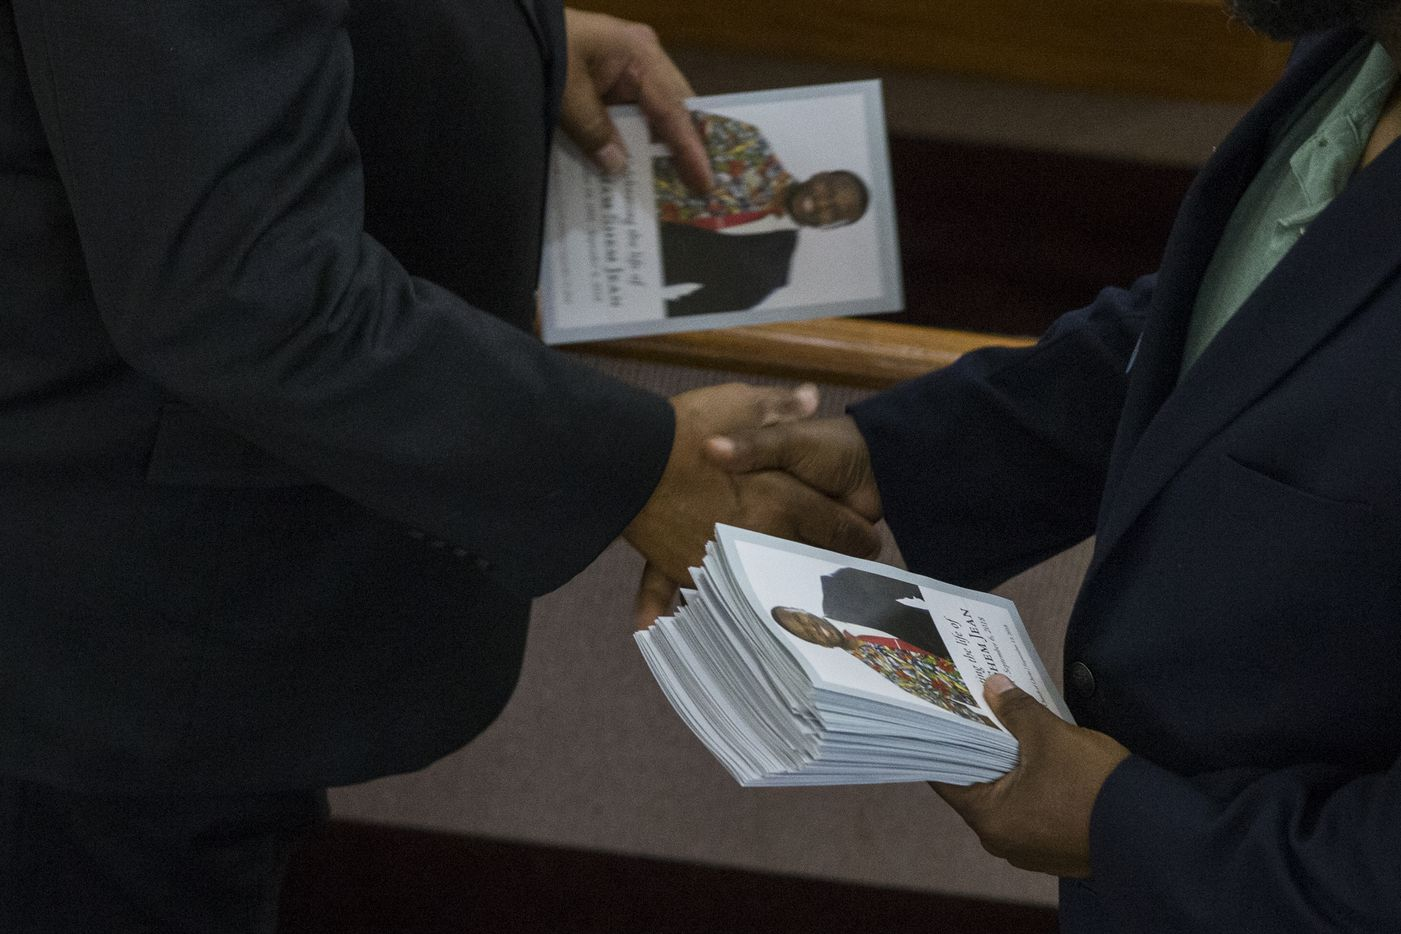 An usher shakes a mouners' hand after handing him a program before the funeral service for Botham Shem Jean at the Greenville Avenue Church of Christ on Thursday, September 13, 2018 in Richardson, Texas. He was shot and killed by a Dallas police officer in his apartment last week in Dallas. (Shaban Athuman/ The Dallas Morning News)